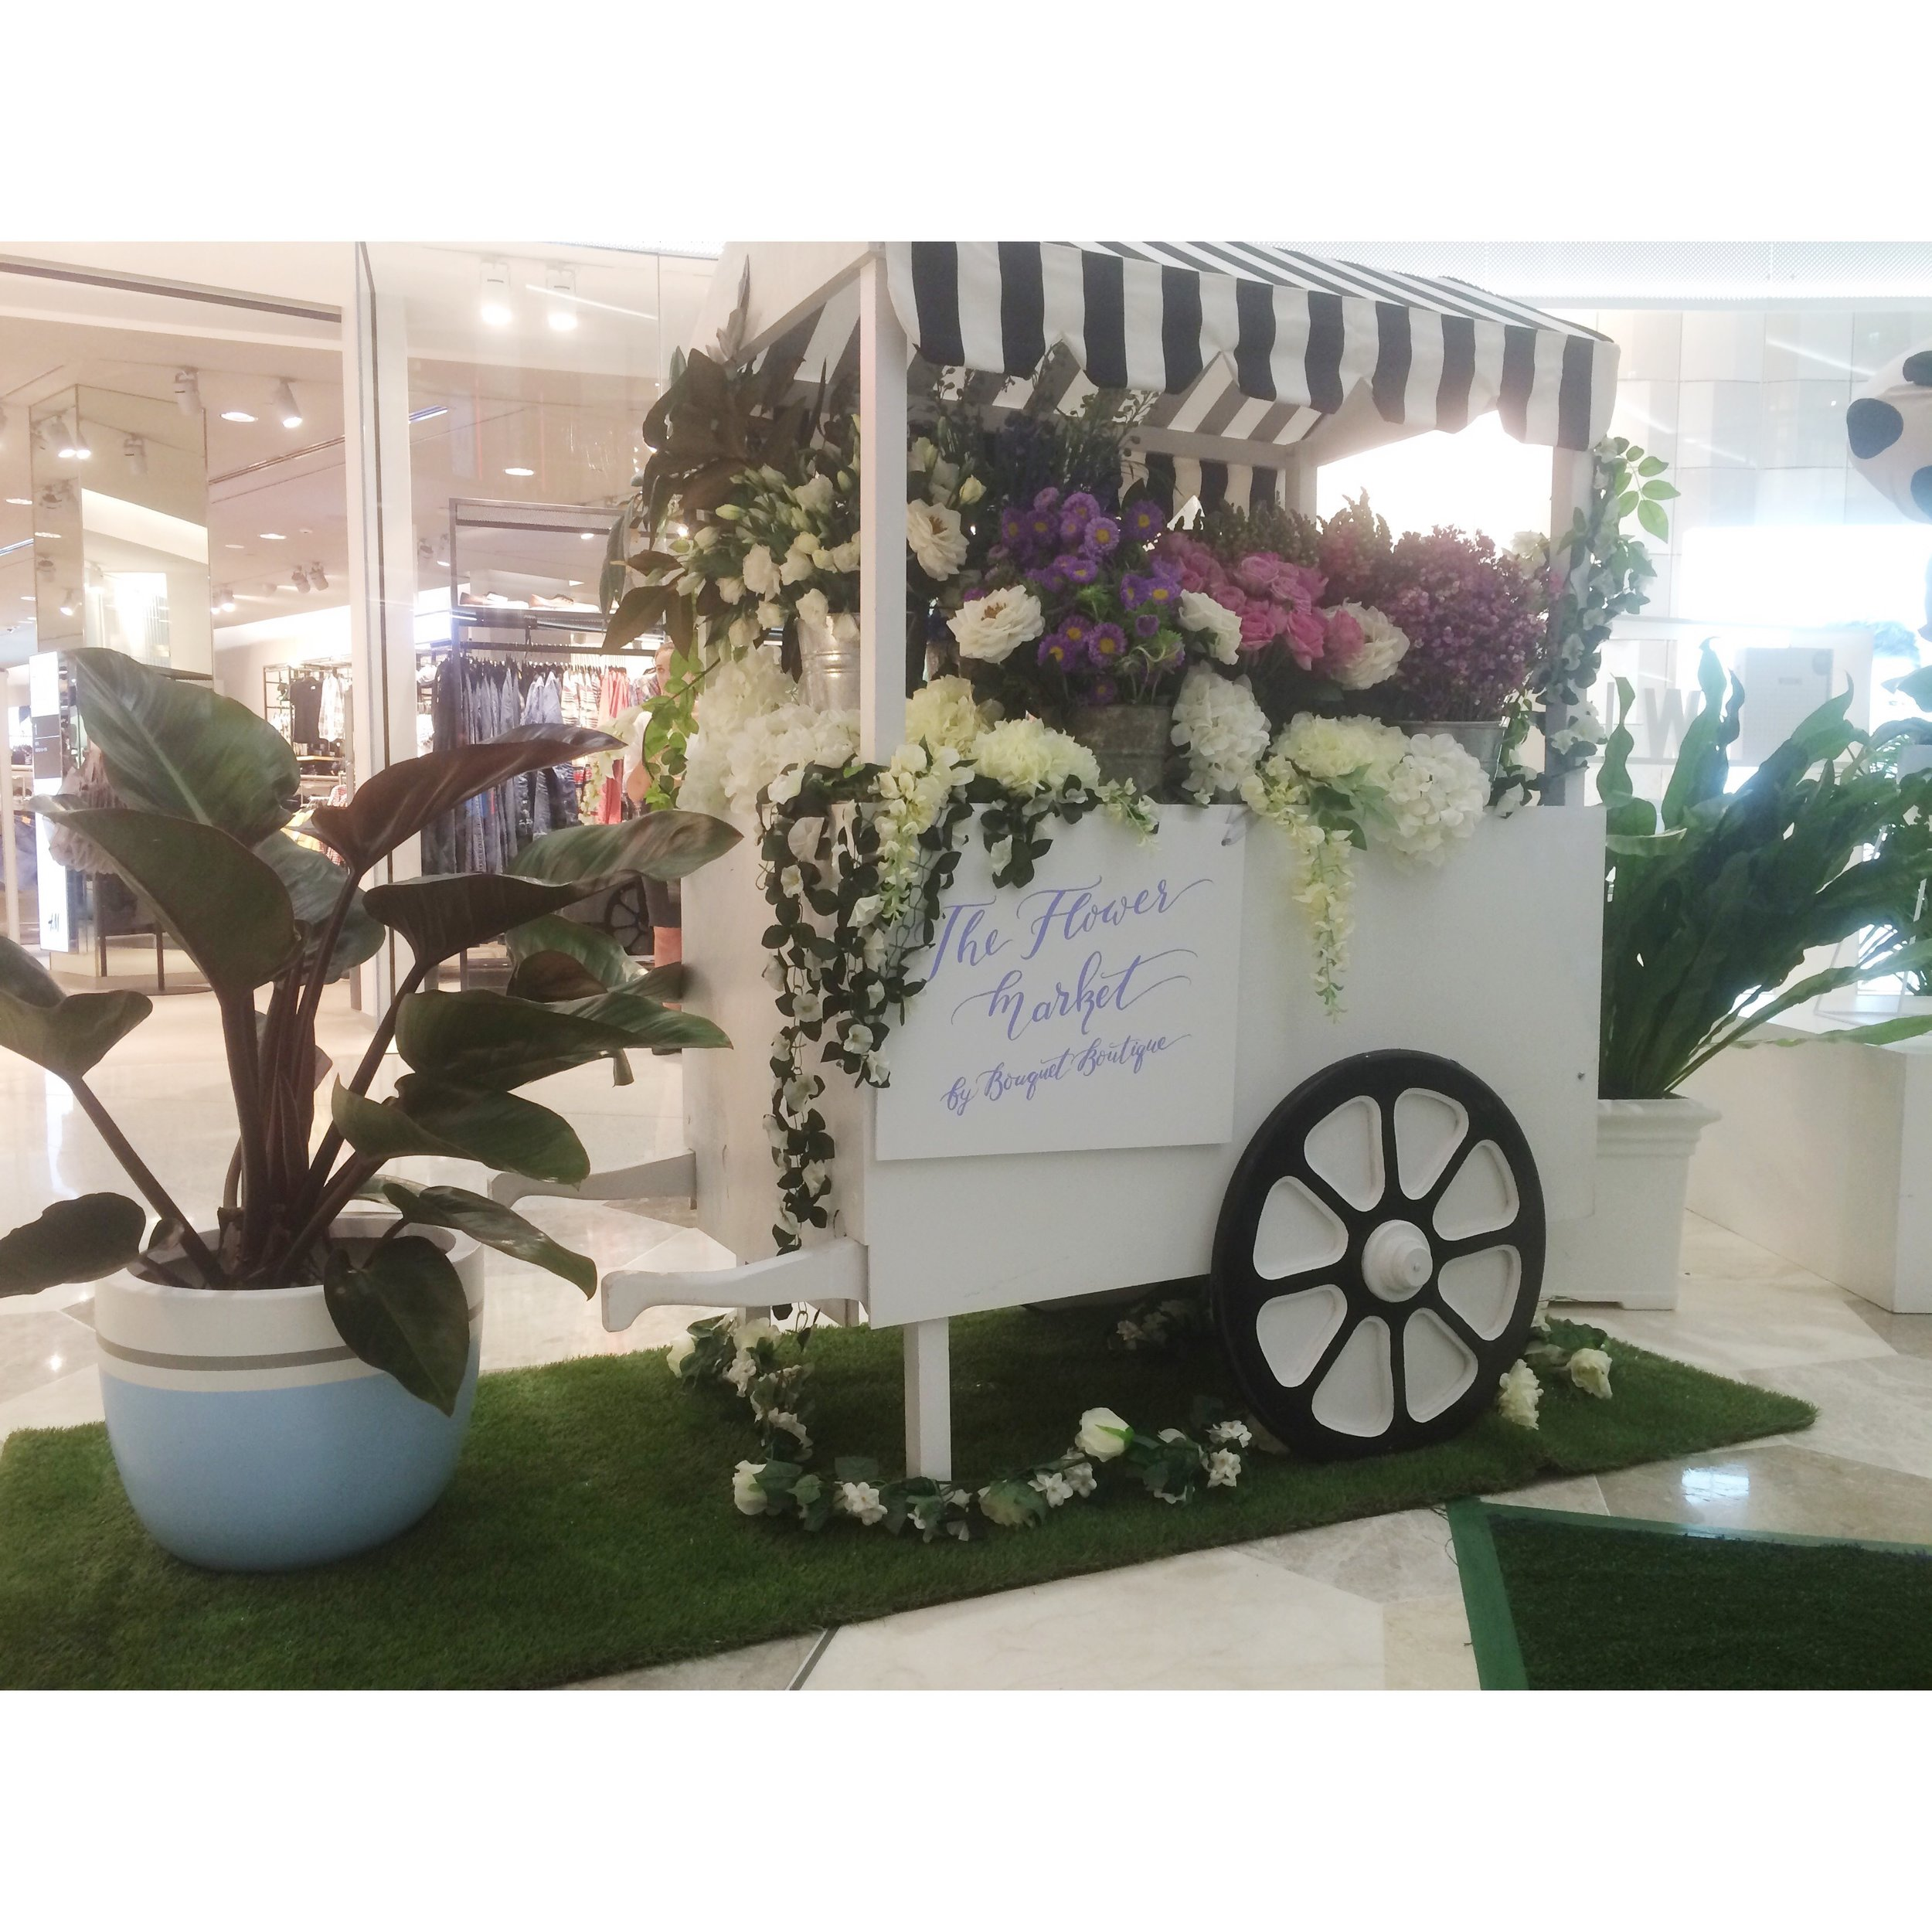 Pots on hire for WhiteWhiteWeddings event at Garden City Shopping centre.jpg